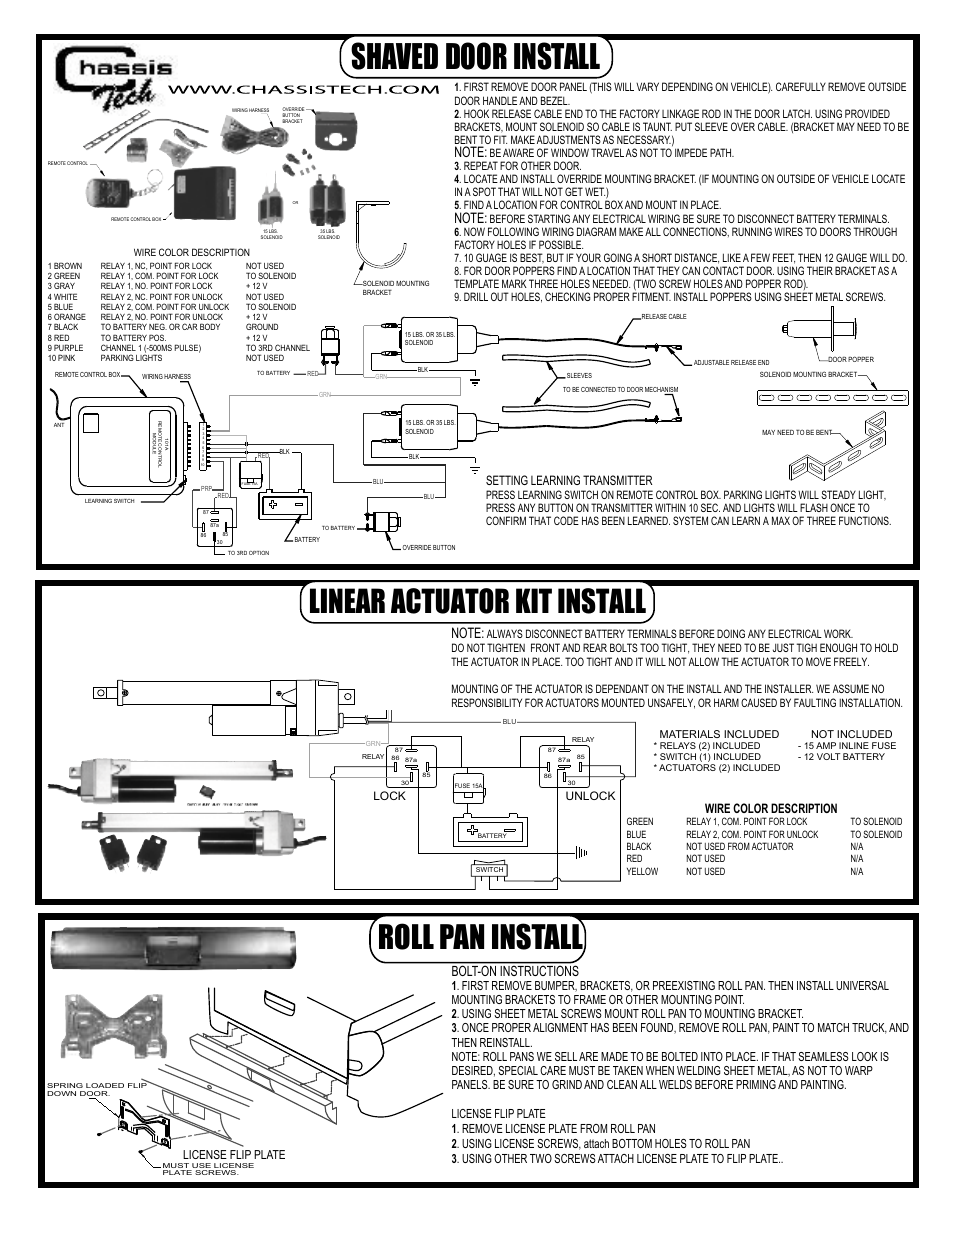 airbagit shaved door linear actuator roll pan page1 airbagit shaved door, linear actuator, roll pan user manual 1 page airbagit wiring diagram at soozxer.org